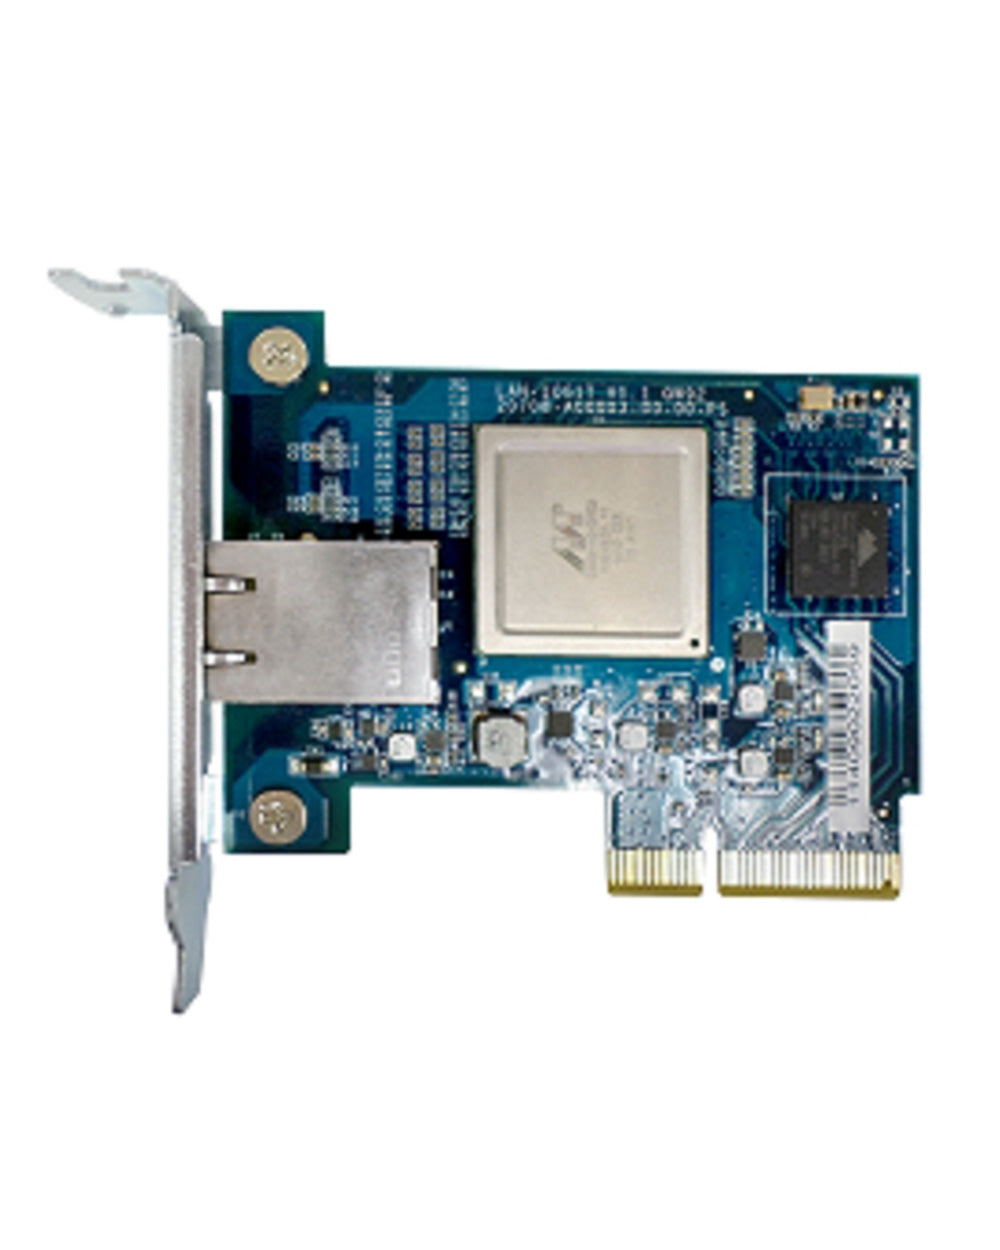 QNAP LAN-10G1T-U Single-port 10GBASE-T network expansion card, rackmount bracket